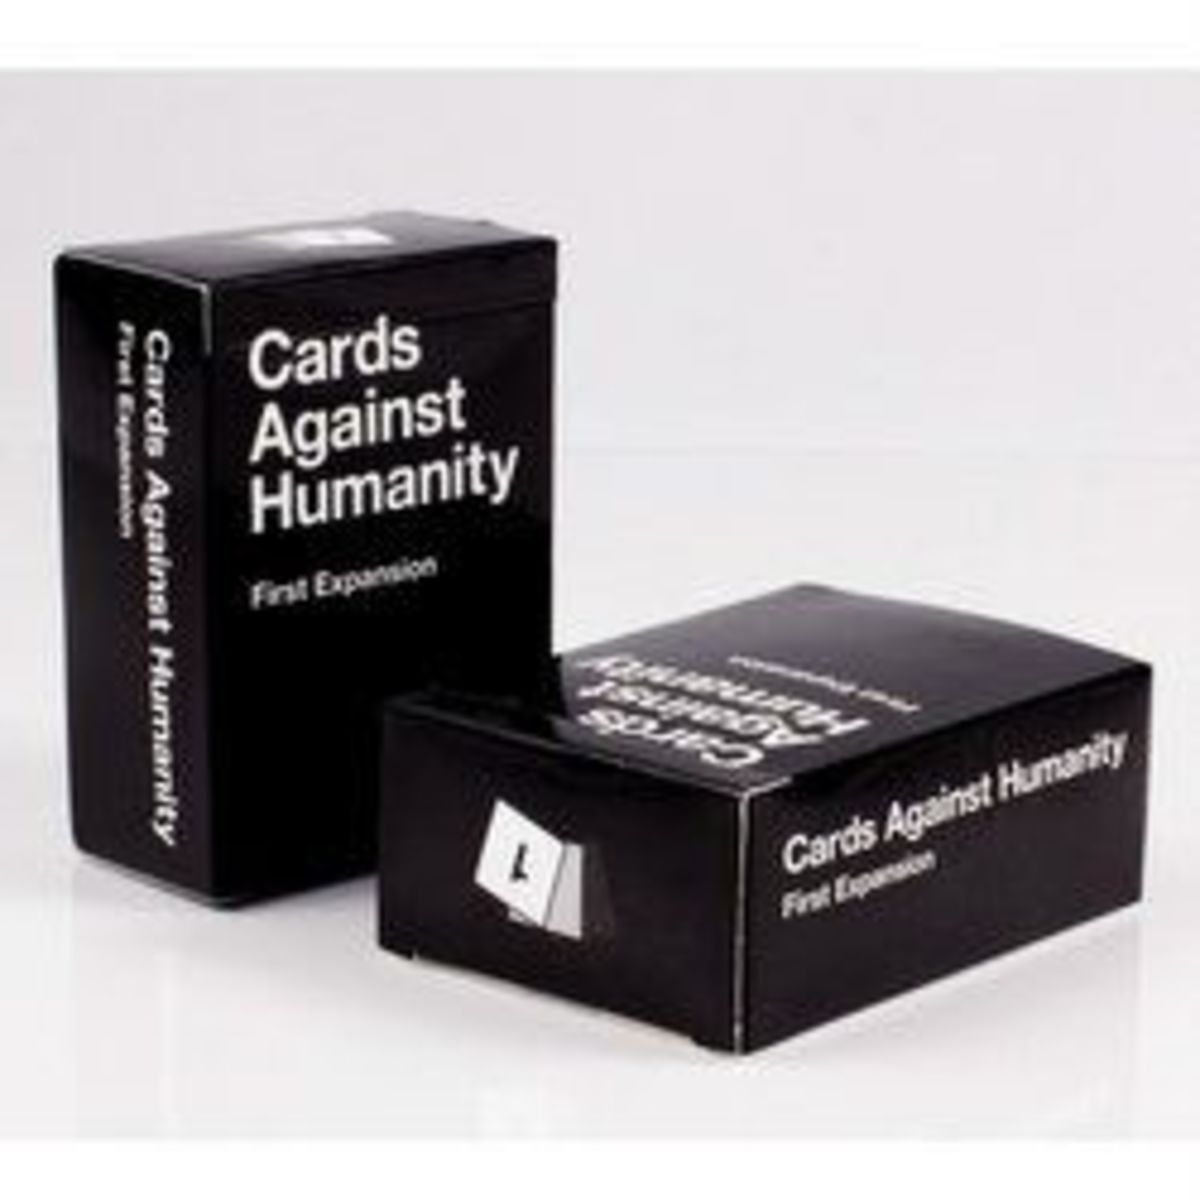 Cards Against Humanity and Expansion Packs - One, Two, Three, and Four